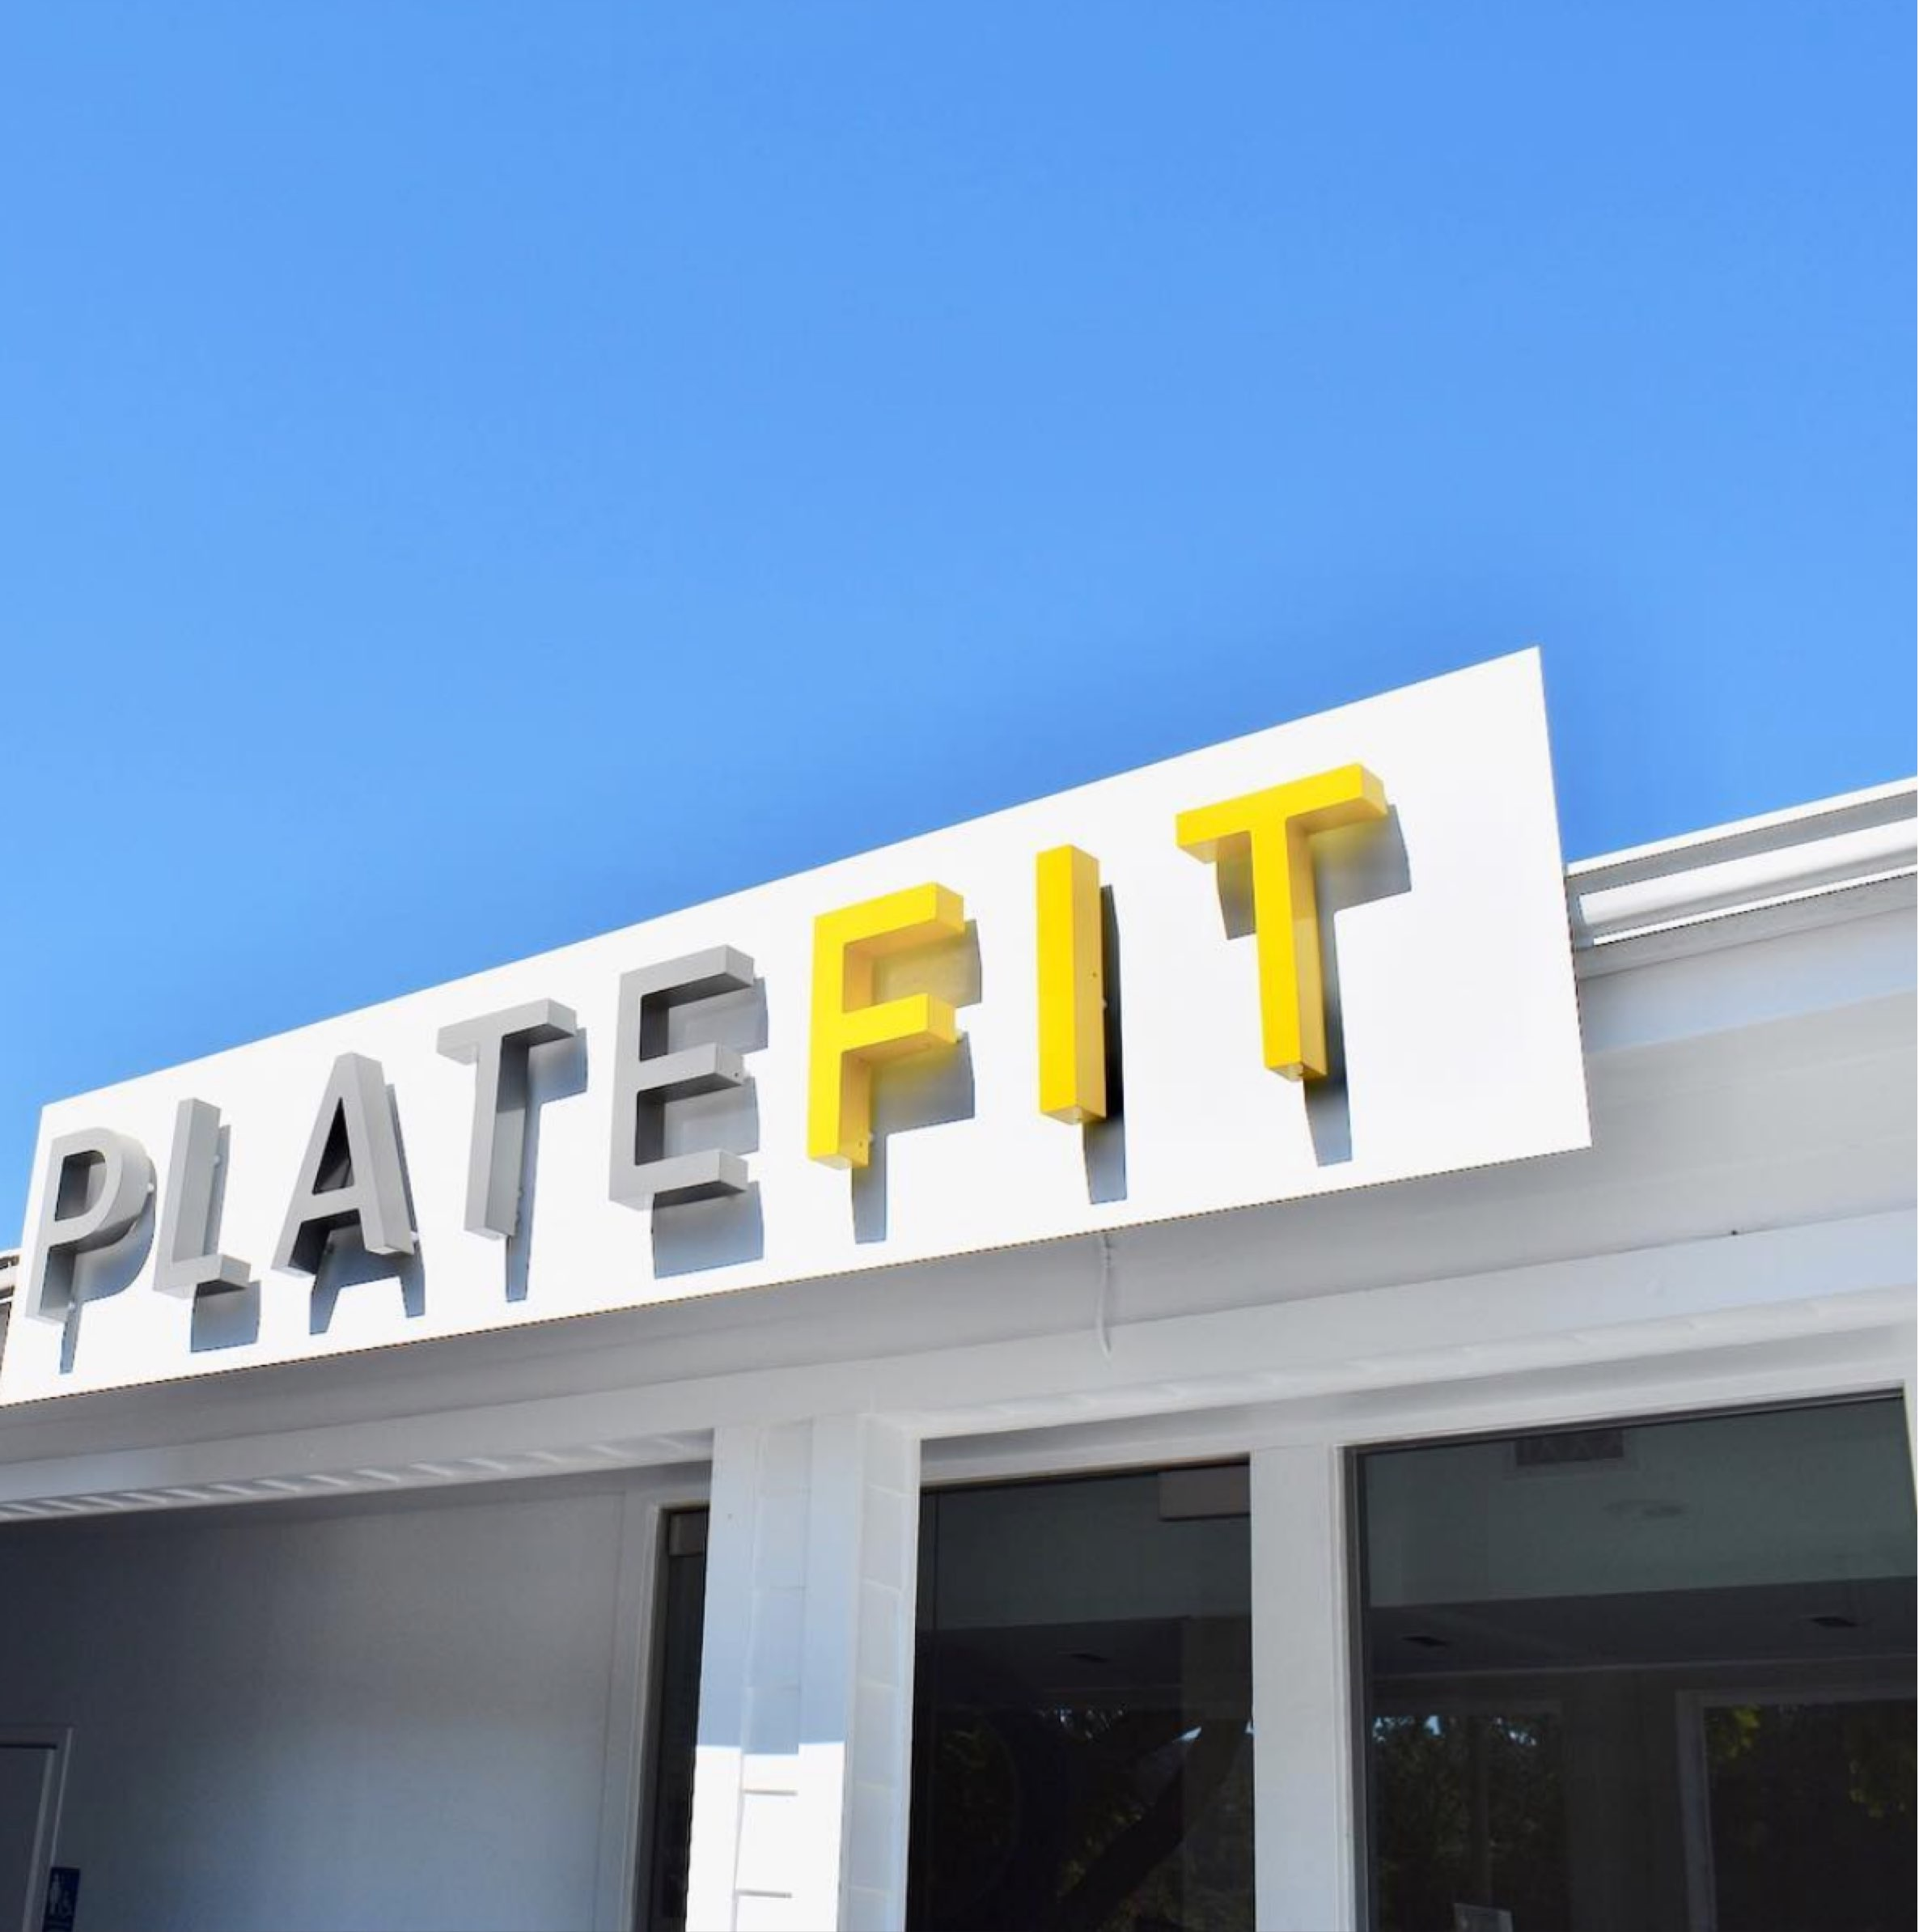 PLATEFIT® (@platefit) • Instagram photos and videos-3-3.jpg